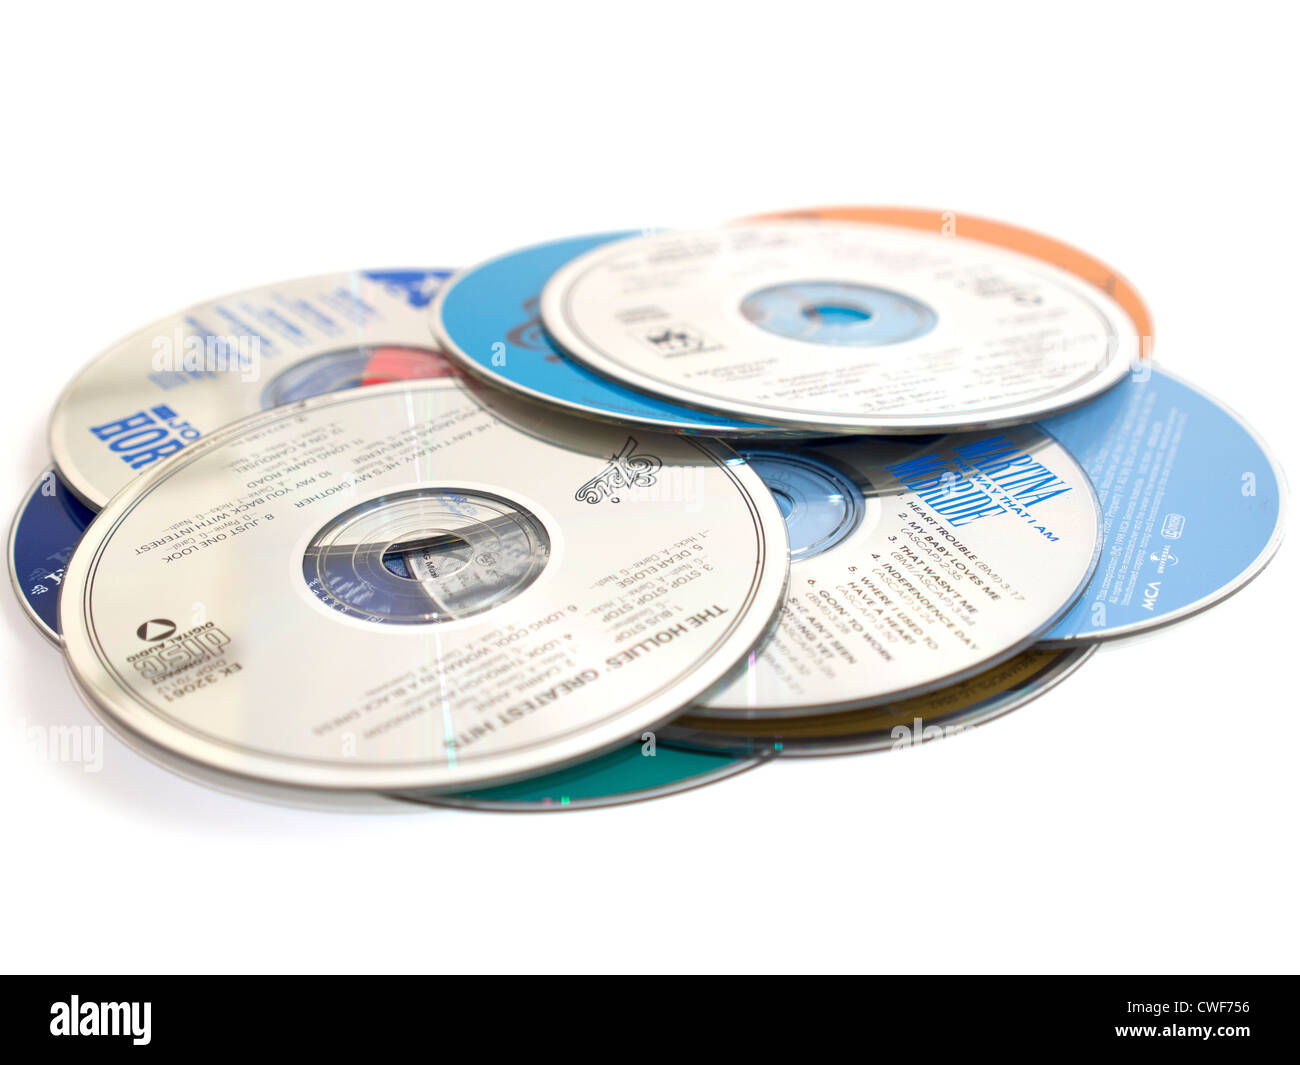 Music CDs  A pile of music compact discs on a white